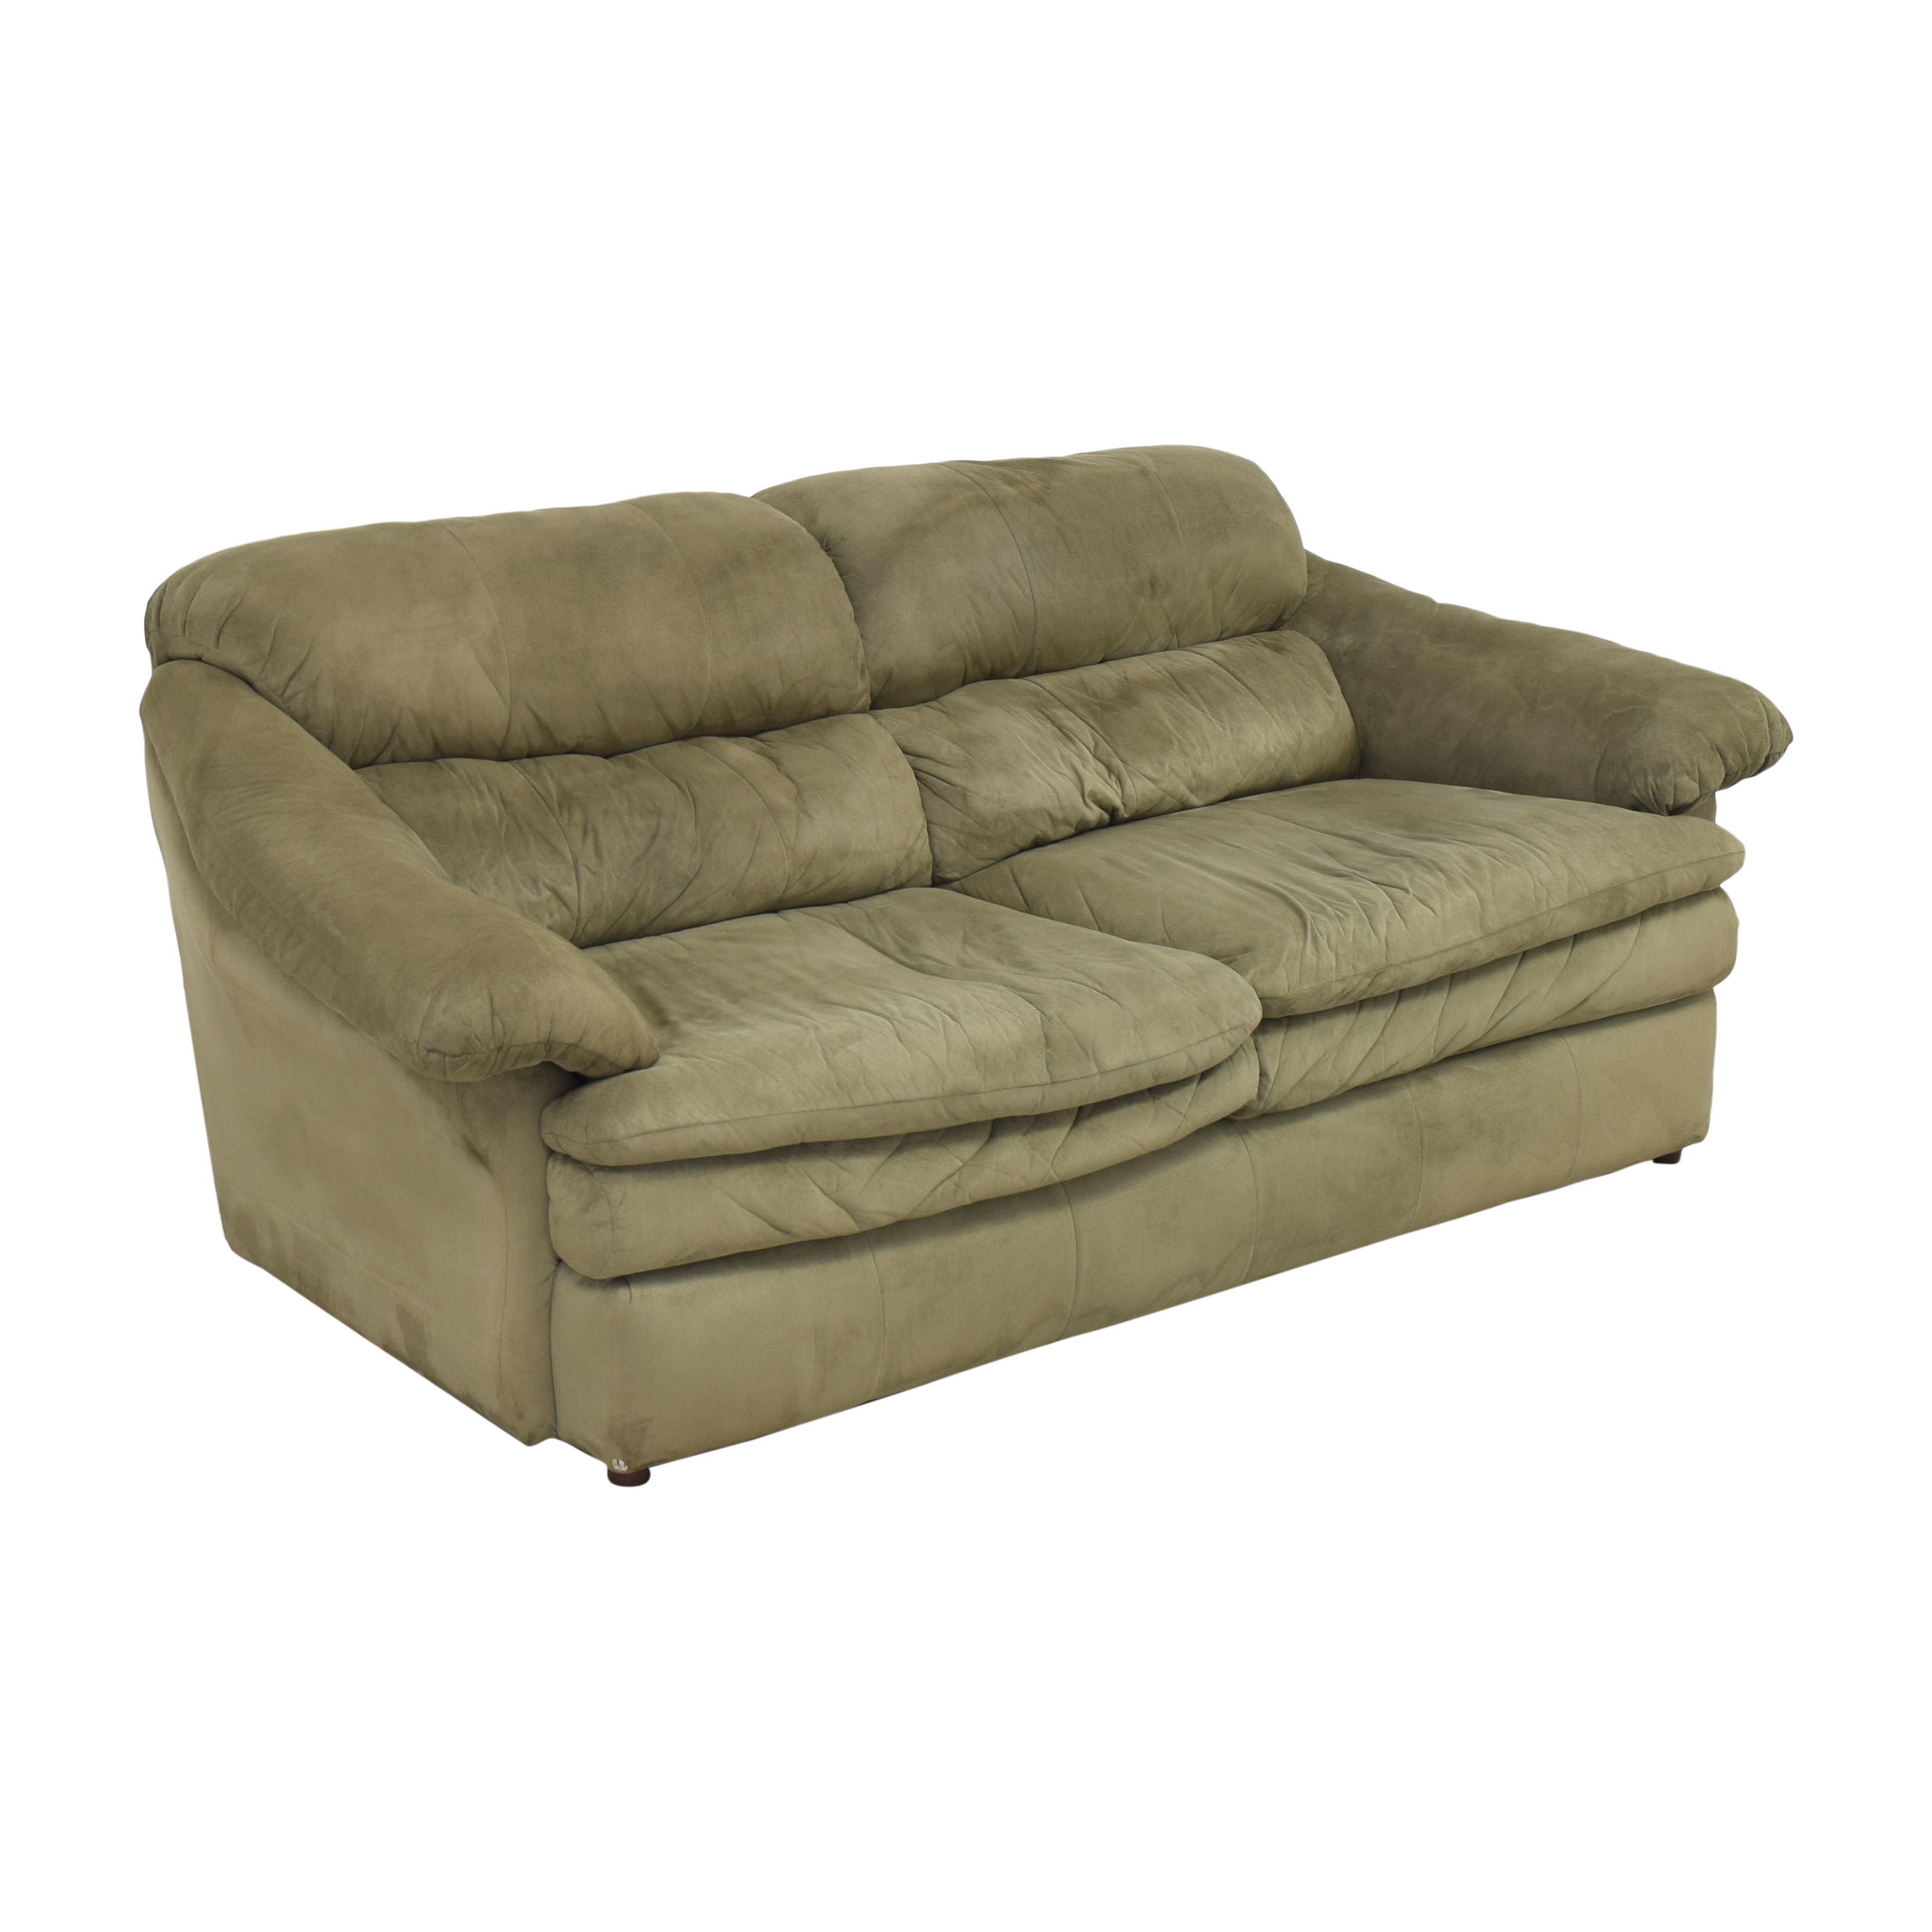 Benchcraft Benchcraft Two Cushion Sofa second hand